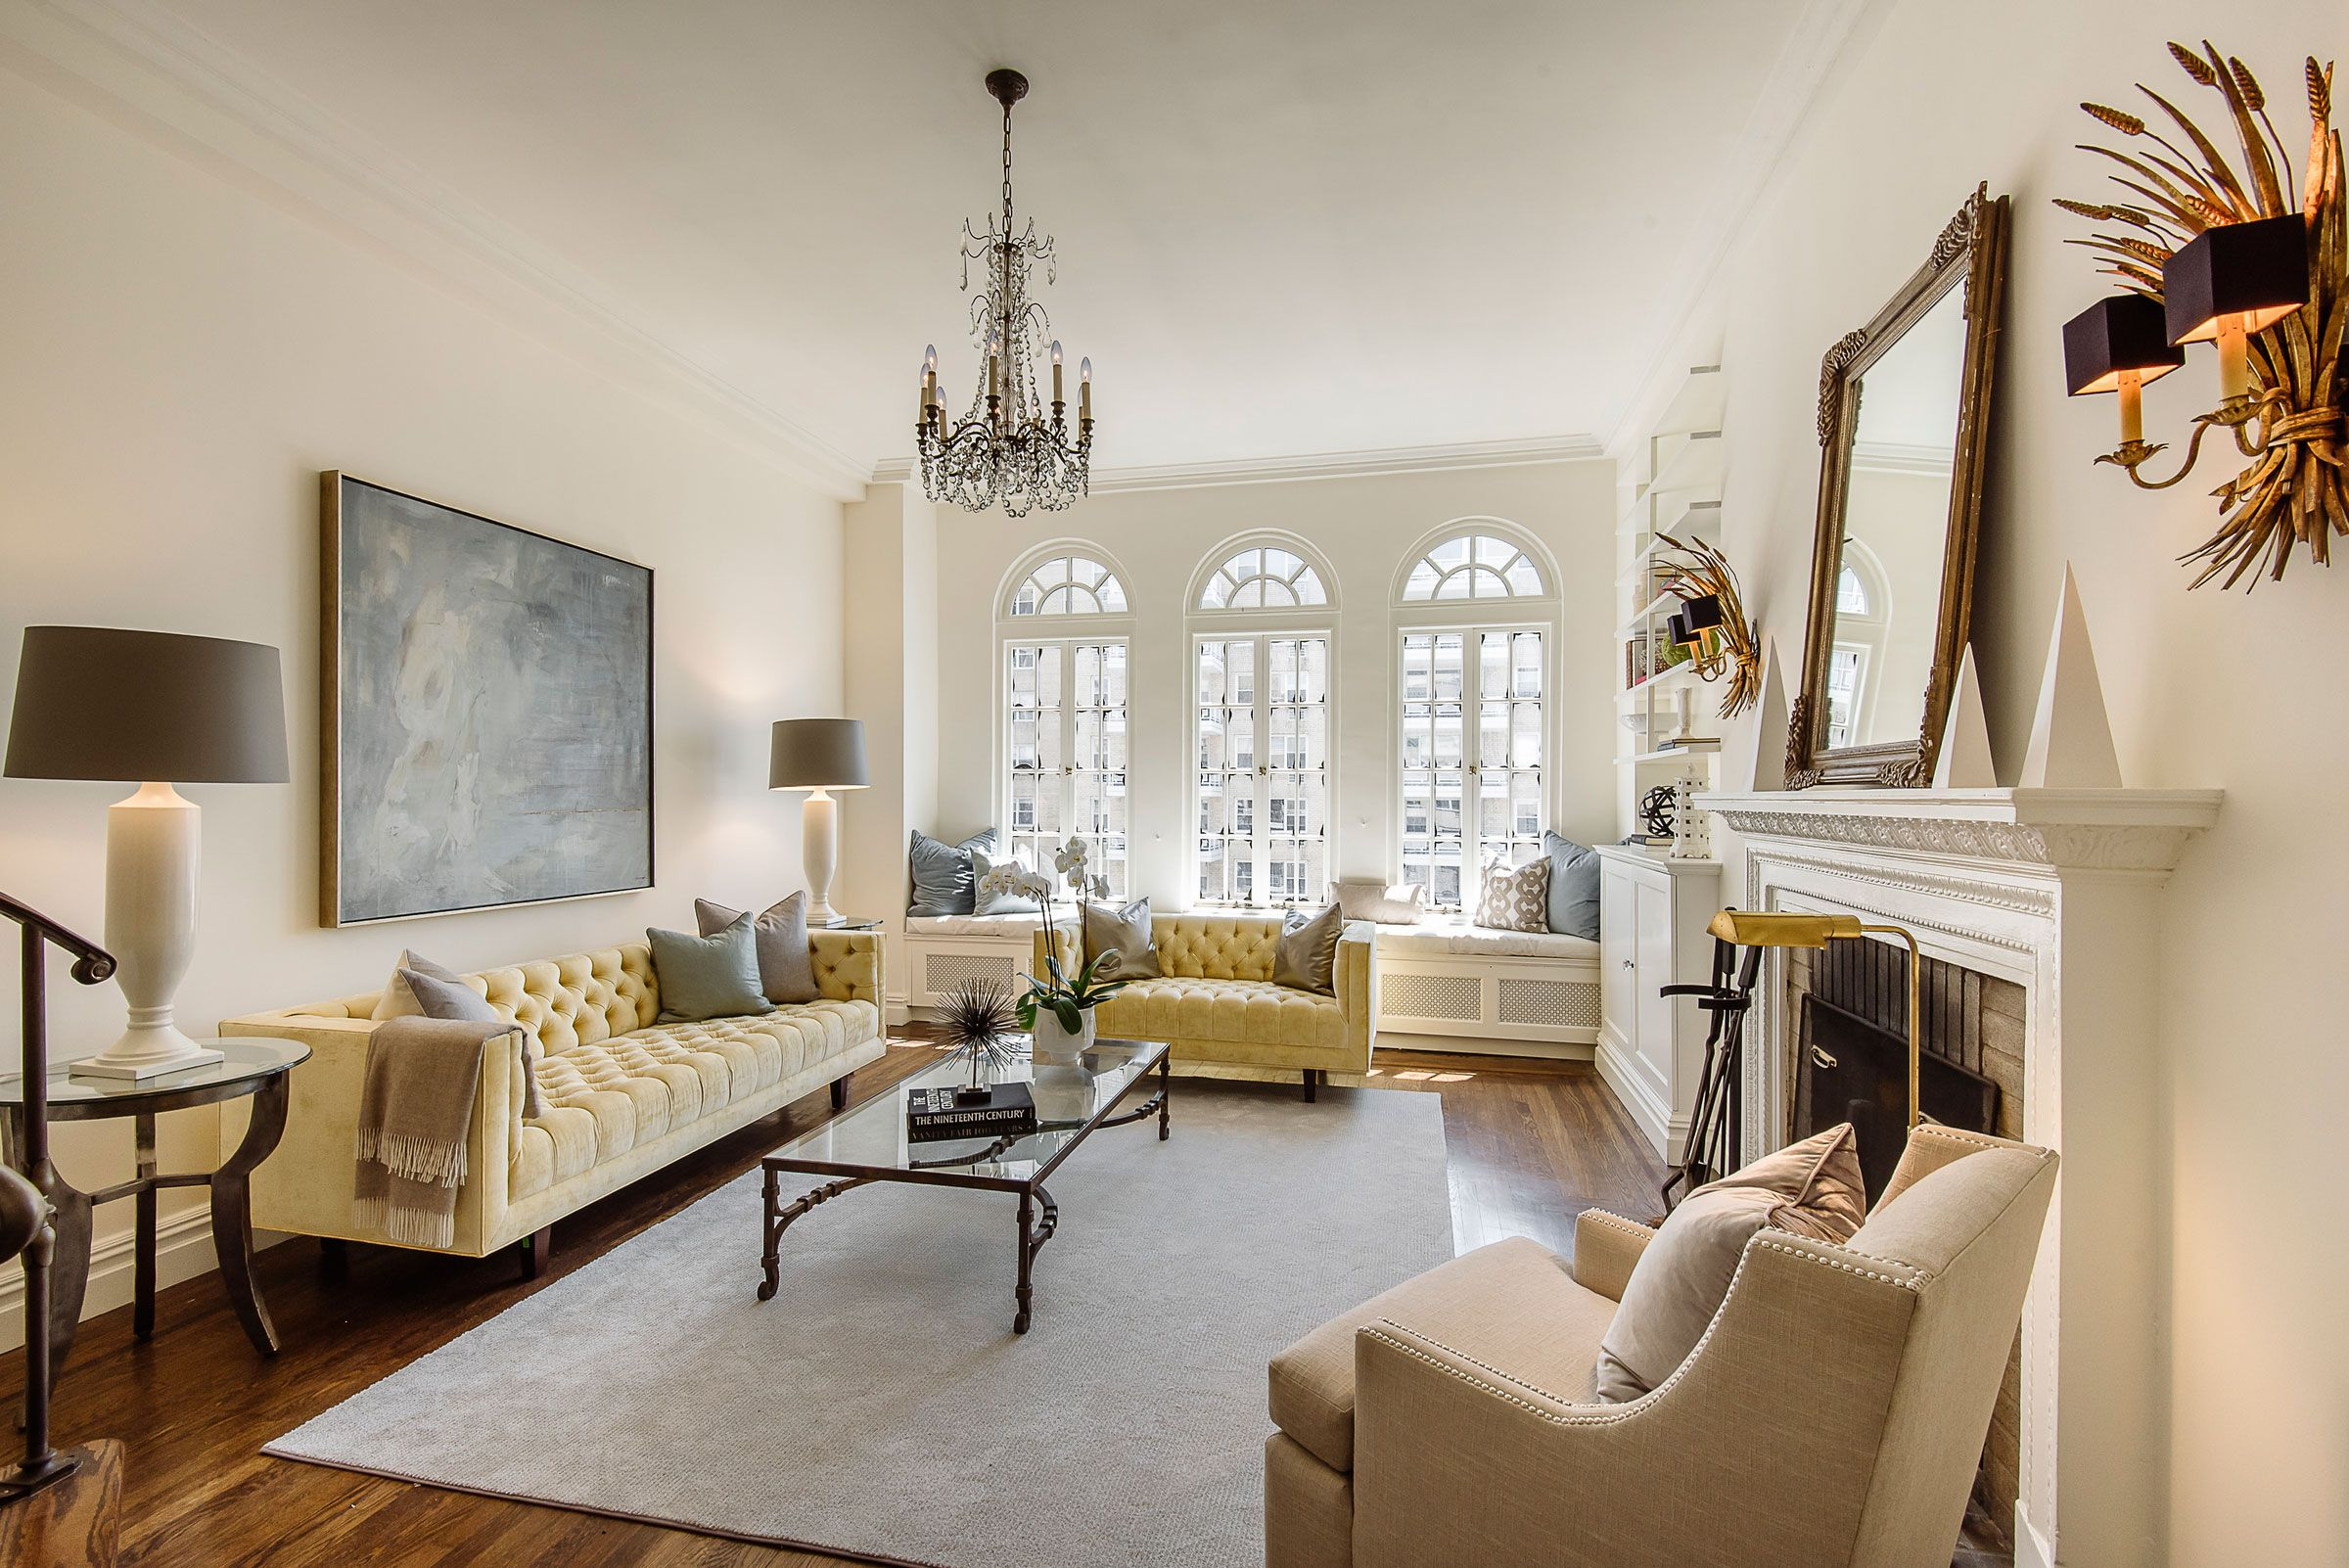 See Inside the Real-Life Carrie Bradshaw's $2.65M NYC Apartment  - Cosmopolitan.com